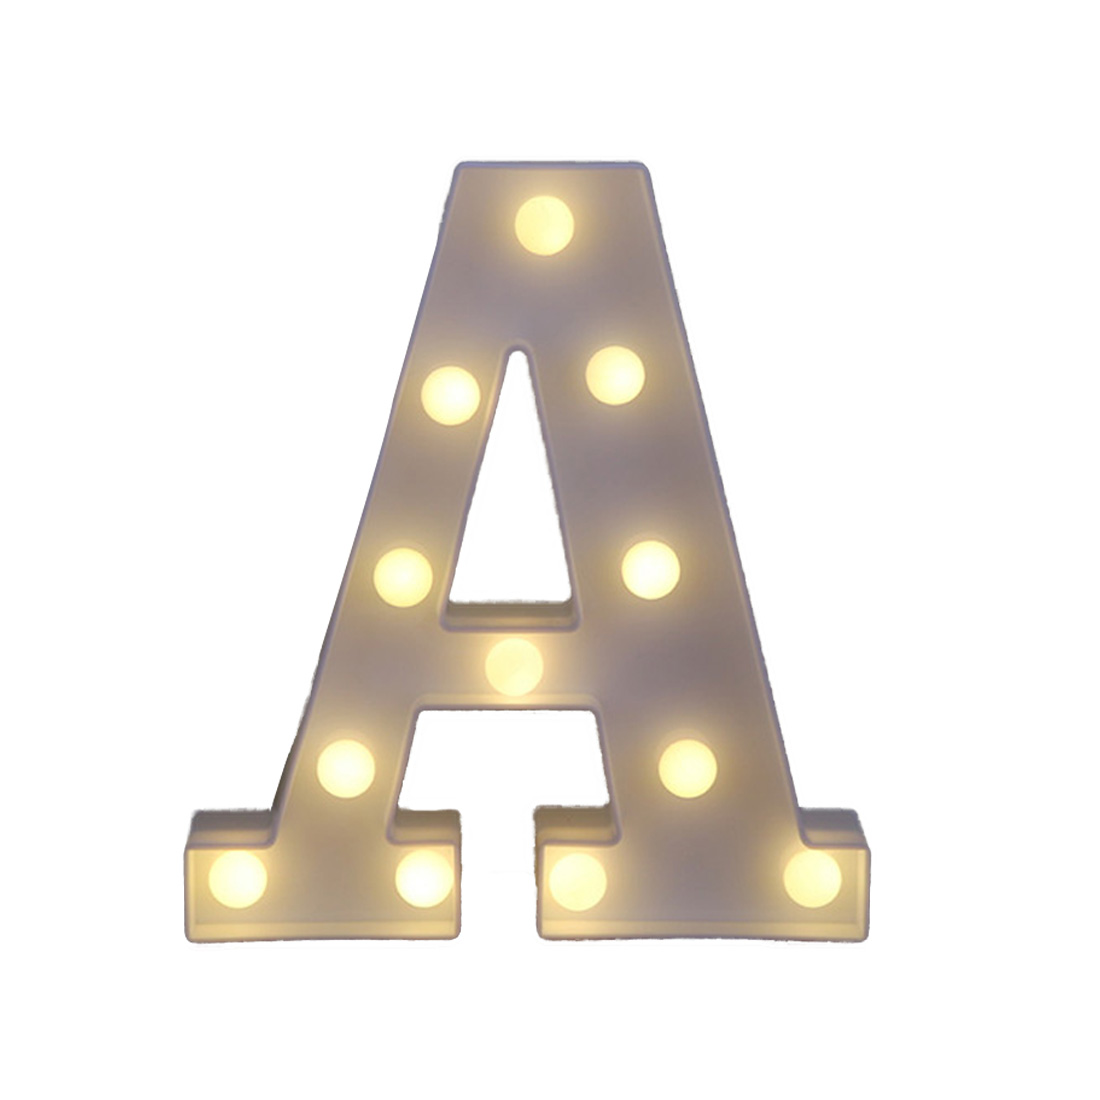 A-Z 26 Letters White LED Night Light Marquee Sign Alphabet Lamp For Birthday Wedding Party Bedroom Wall Hanging DecorA-Z 26 Letters White LED Night Light Marquee Sign Alphabet Lamp For Birthday Wedding Party Bedroom Wall Hanging Decor